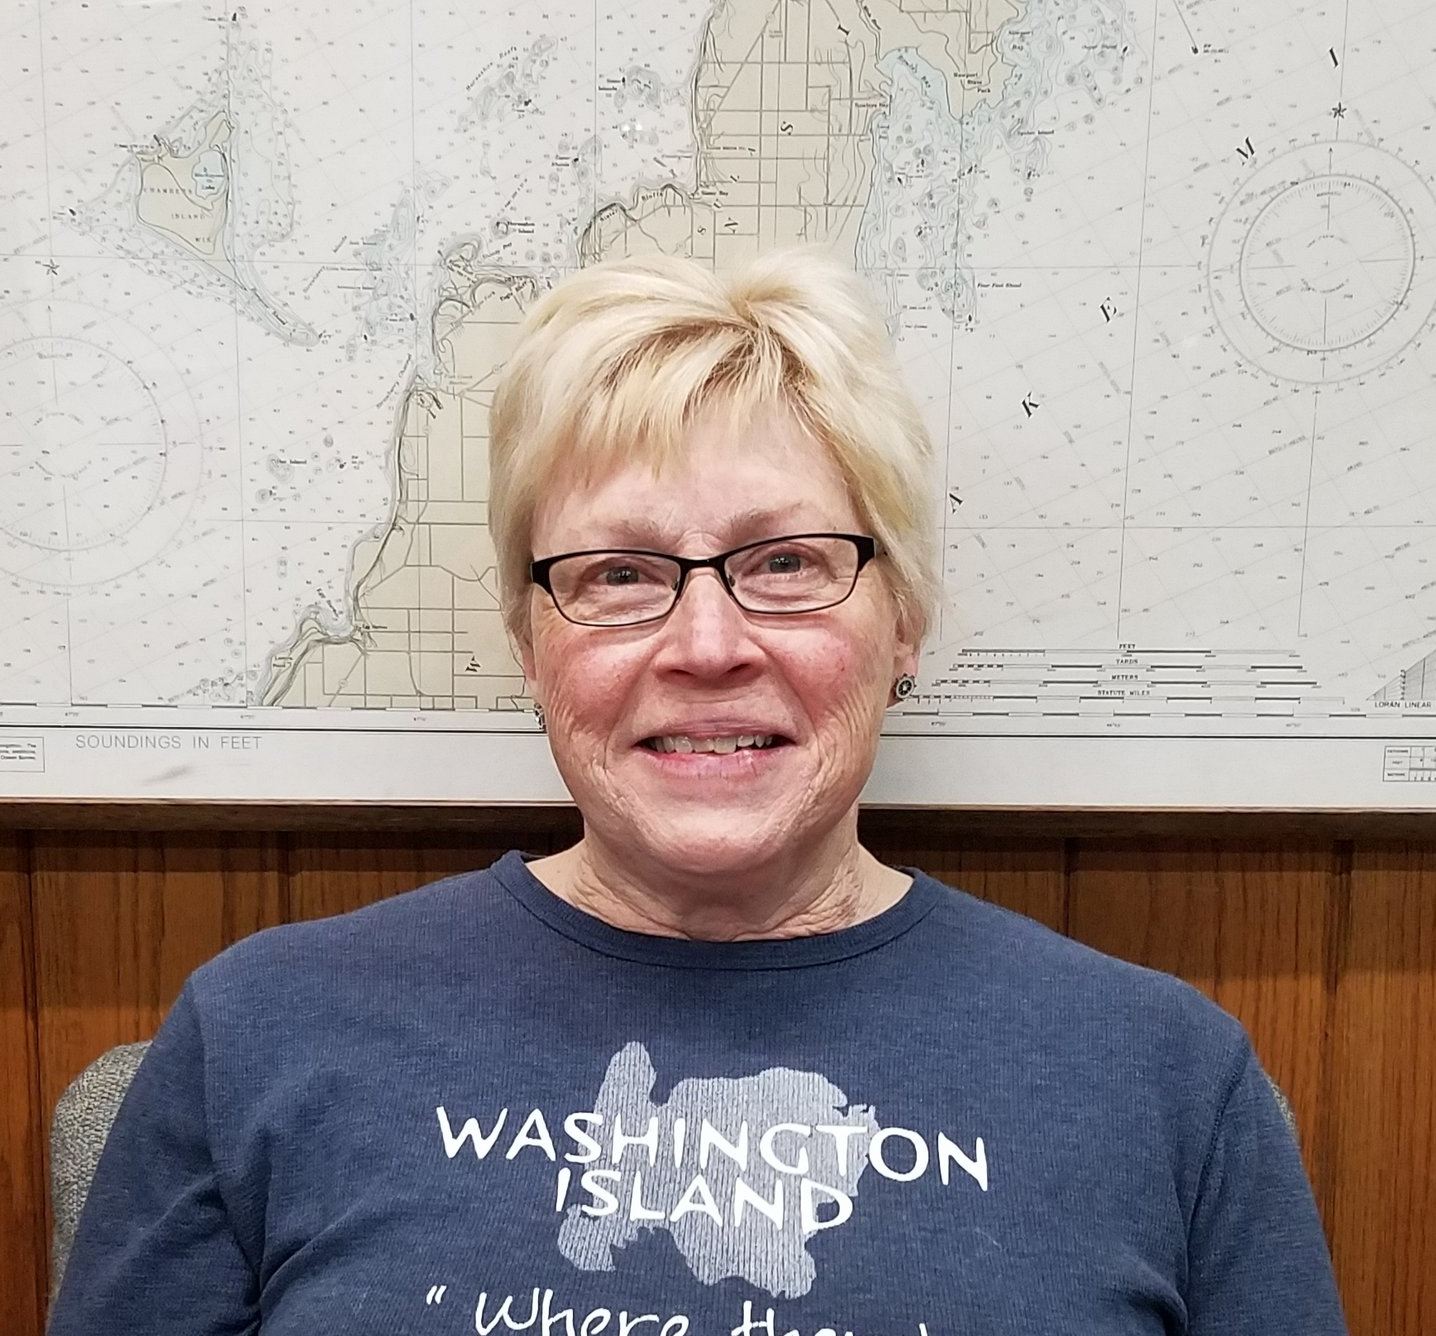 Lois Krueger - Lois Krueger is taking care of all the cleaning needs at the Rec Center. When she is not cleaning she enjoys cooking, baking and spending time with her family.